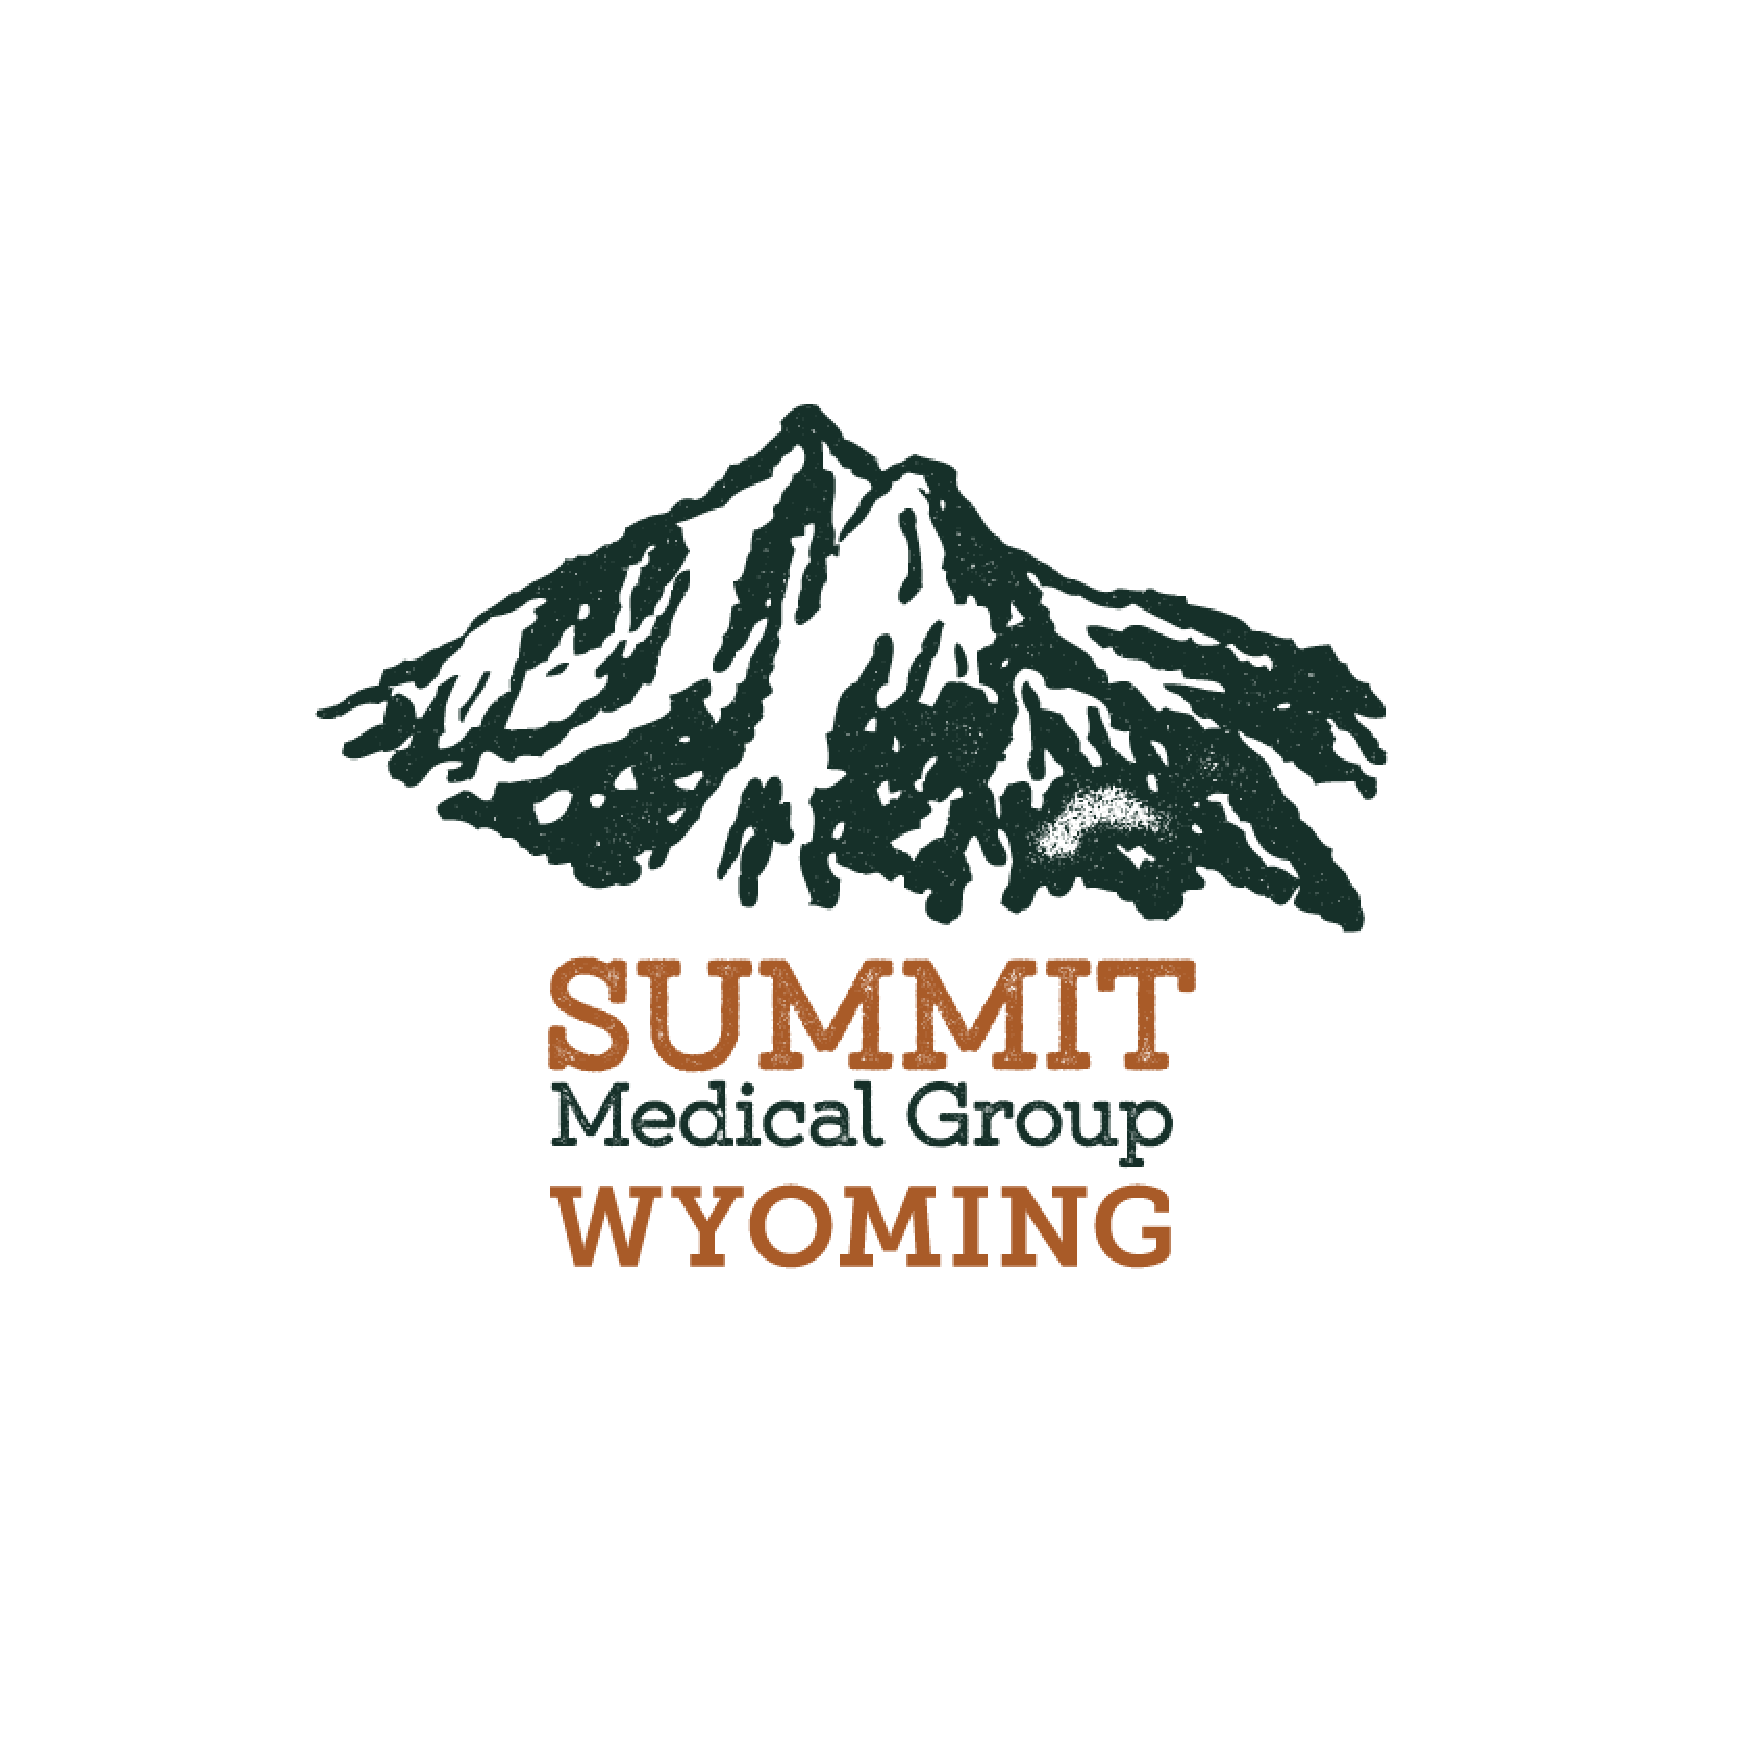 Summit Medical Group Wyoming